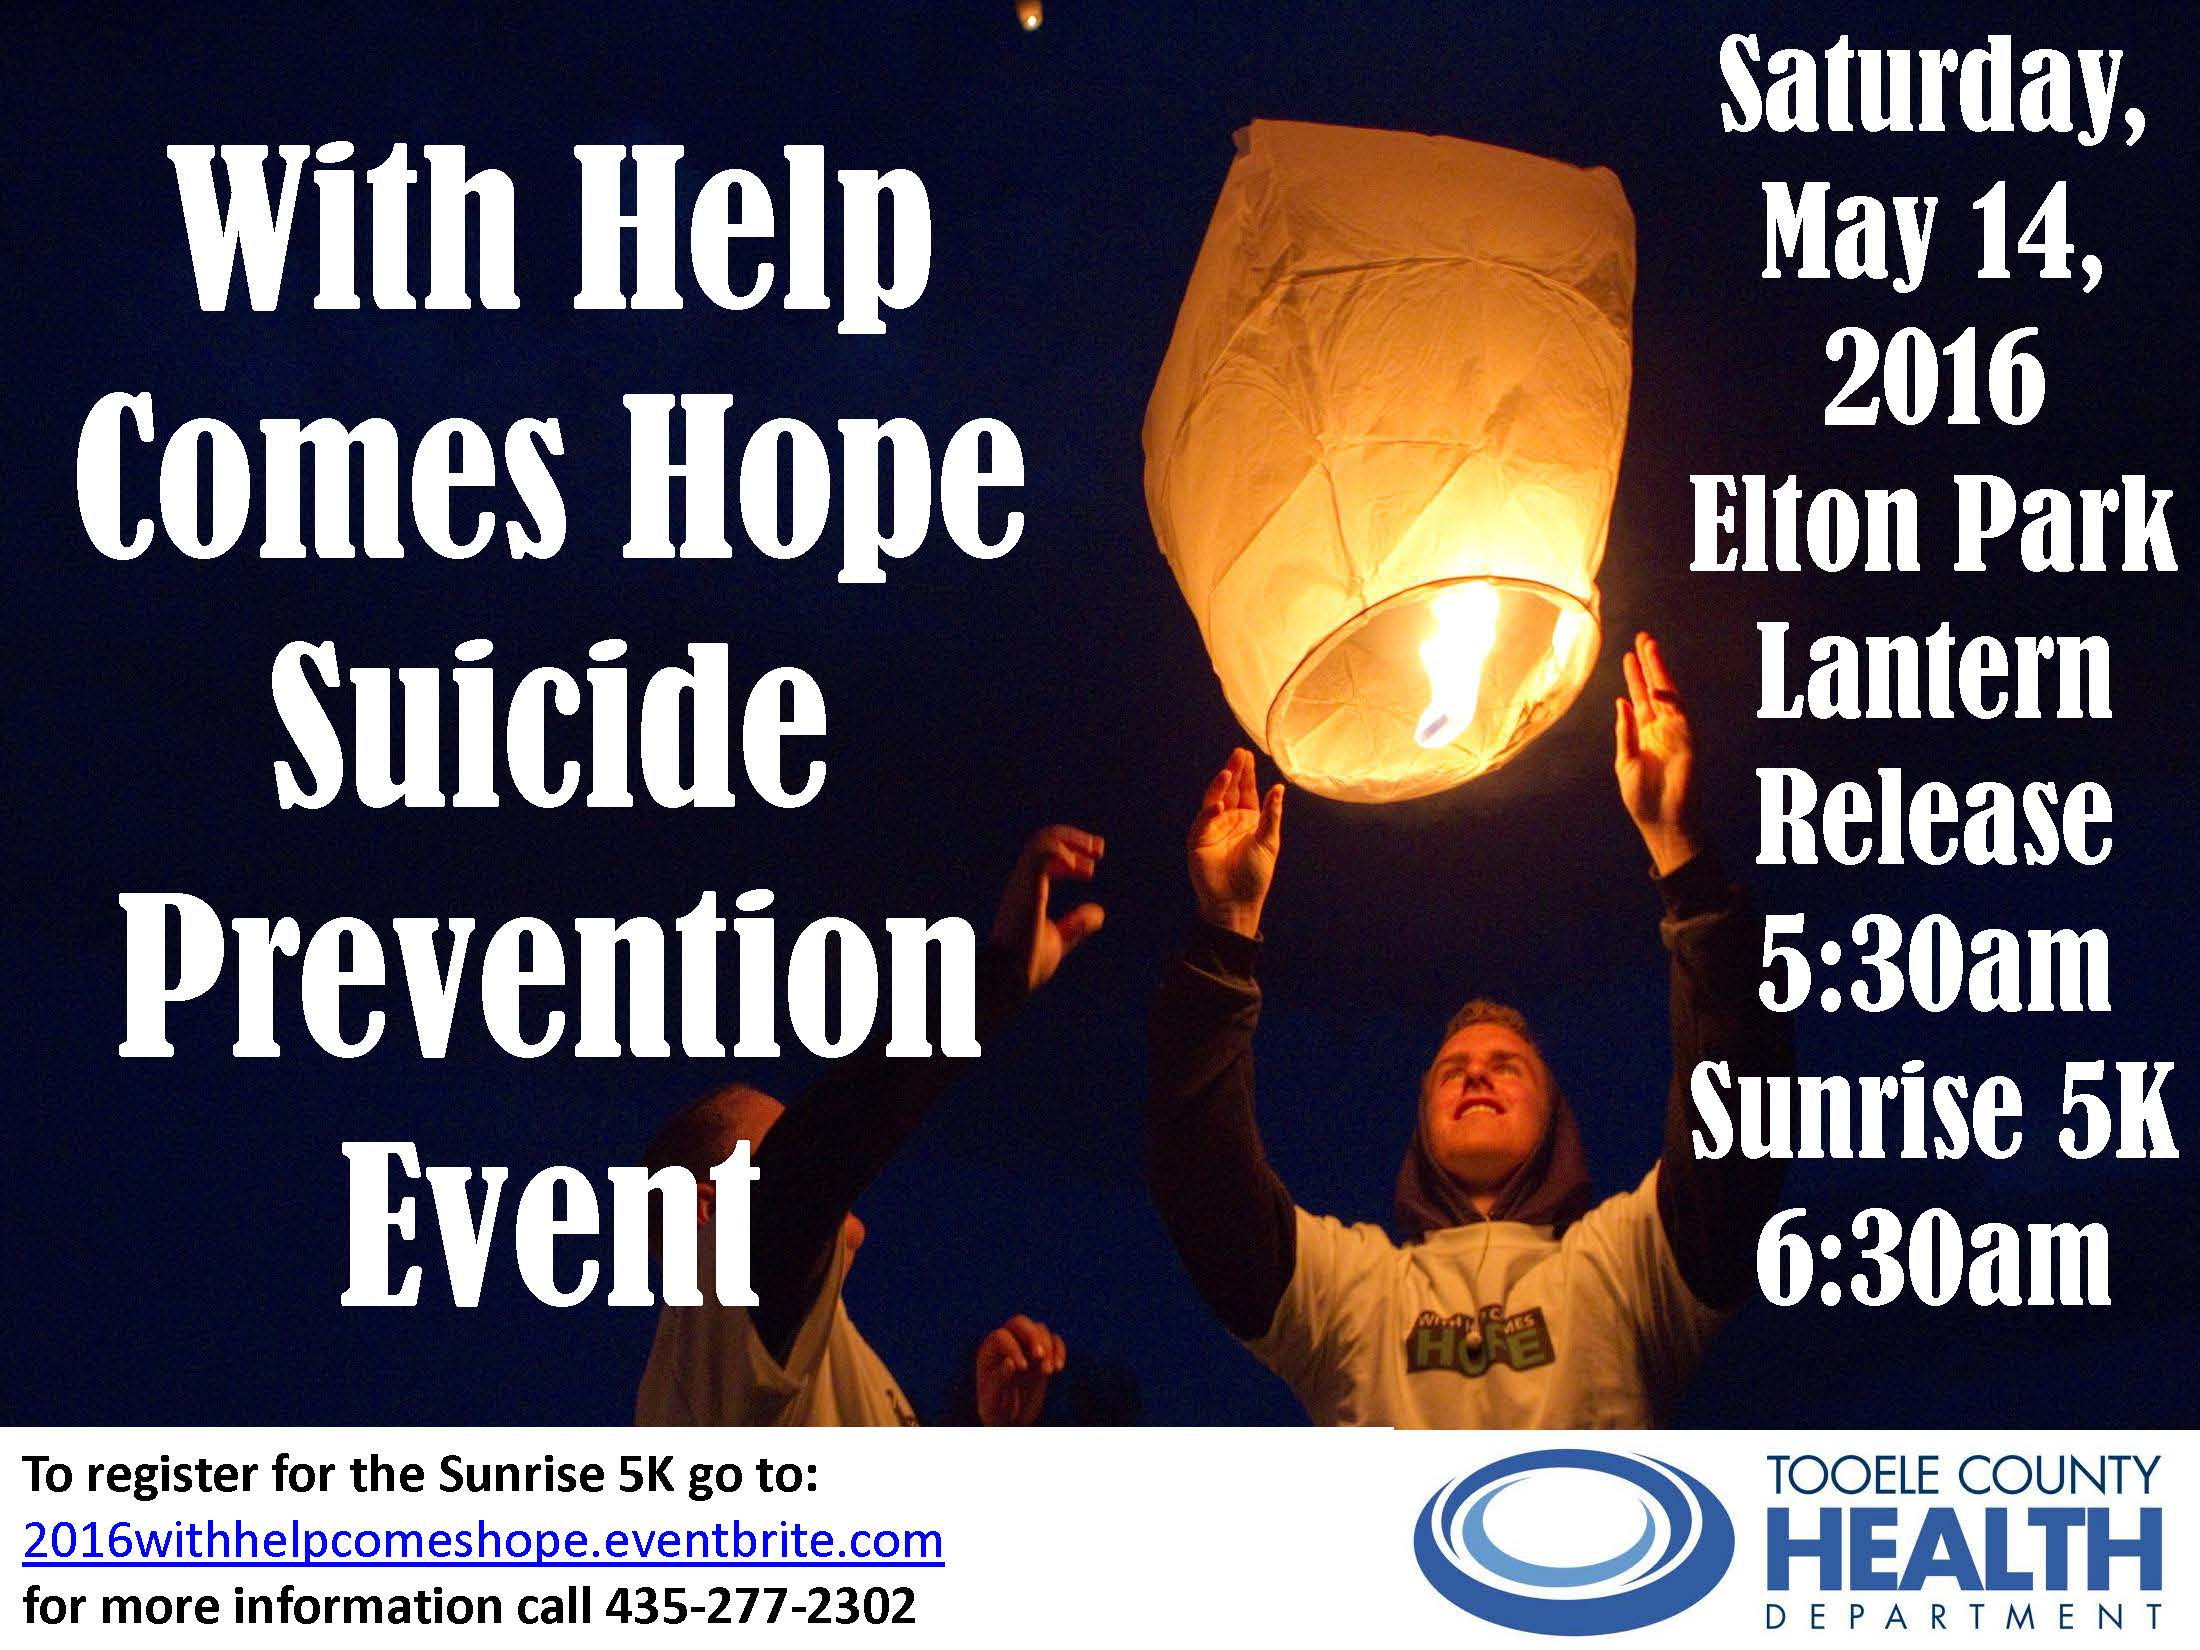 With Help Comes Hope - Suicide Prevention Event @ Elton Park | Tooele | Utah | United States